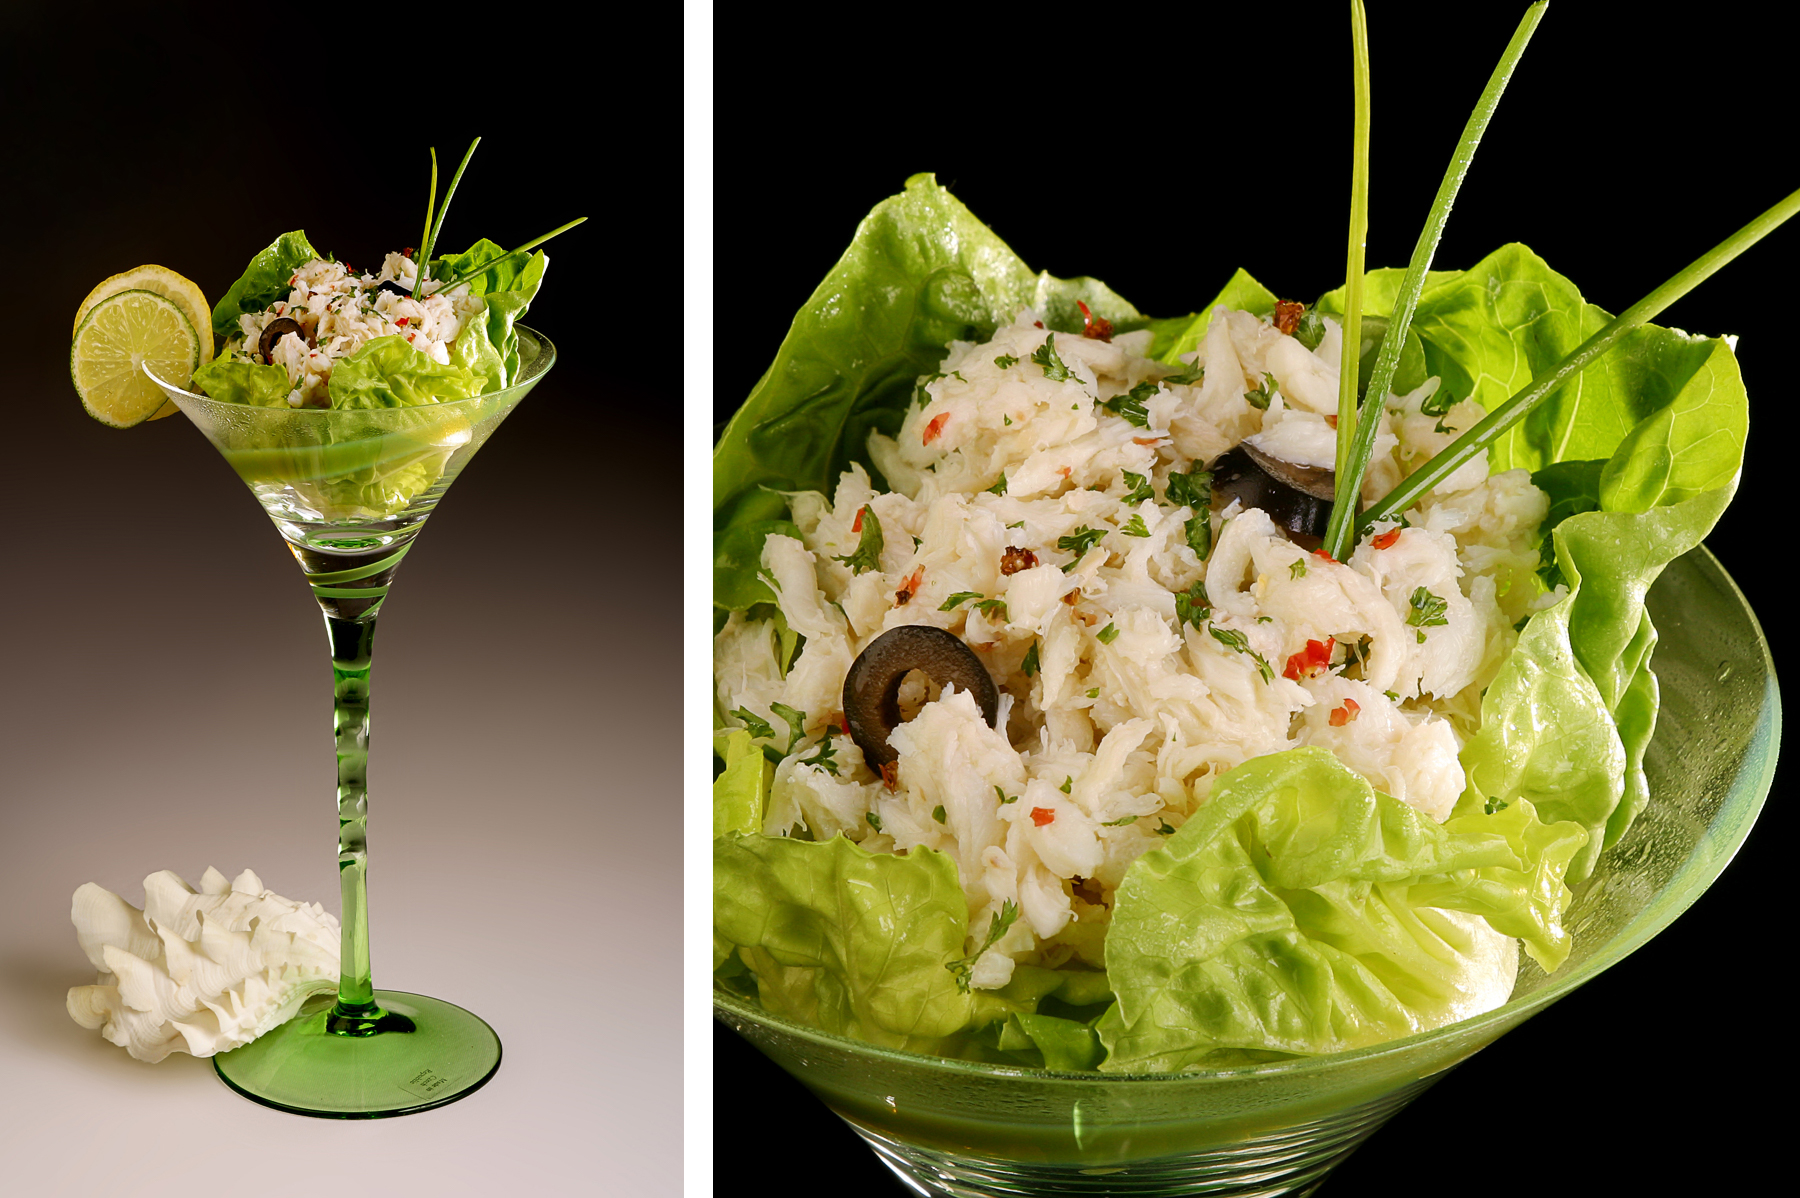 Professional Food Photography and Branding in Florida by Domino Arts